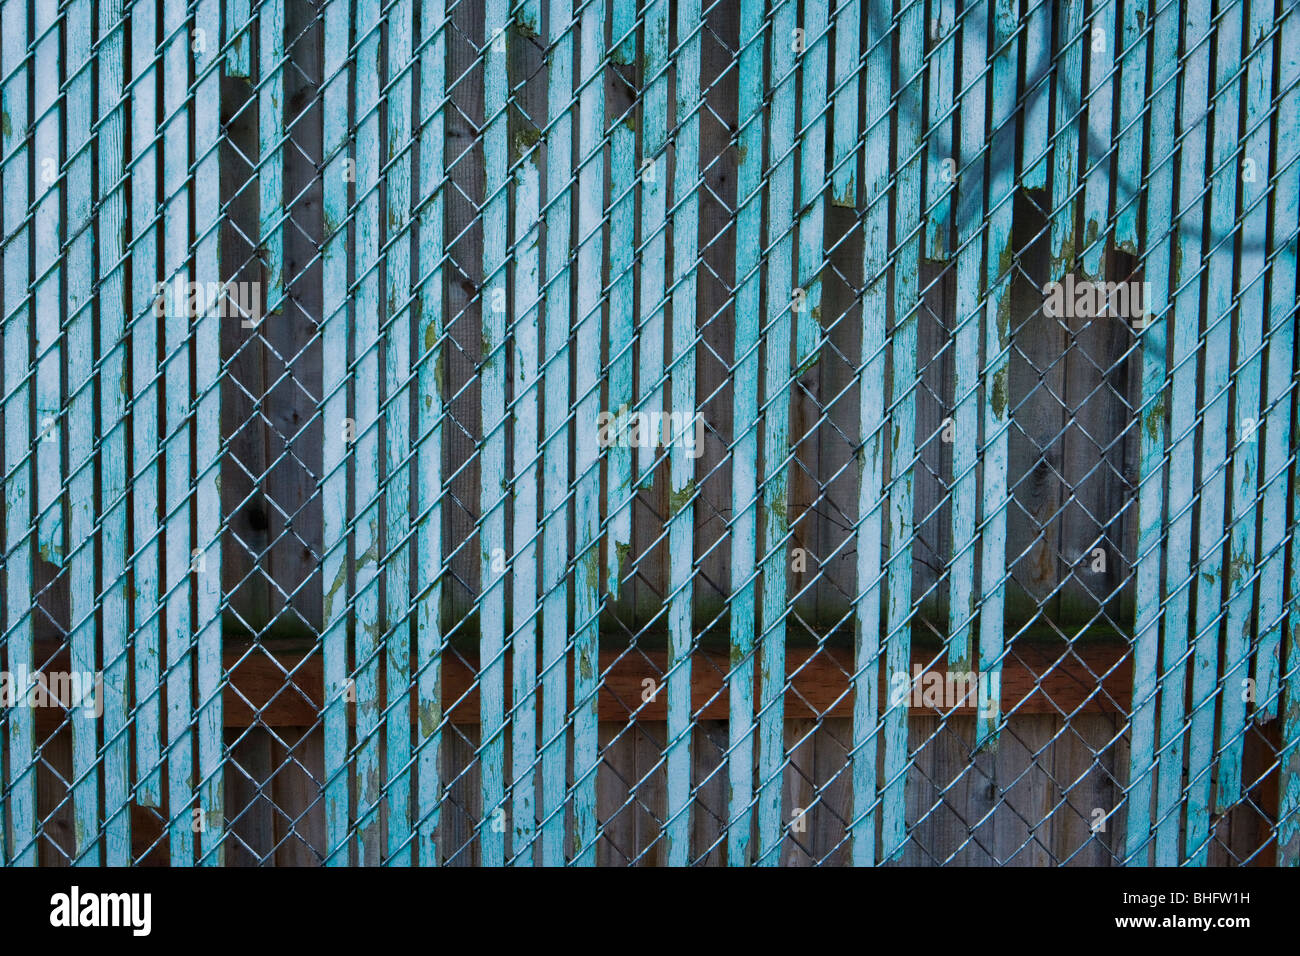 An old chain-link fence with broken wooden slats. - Stock Image